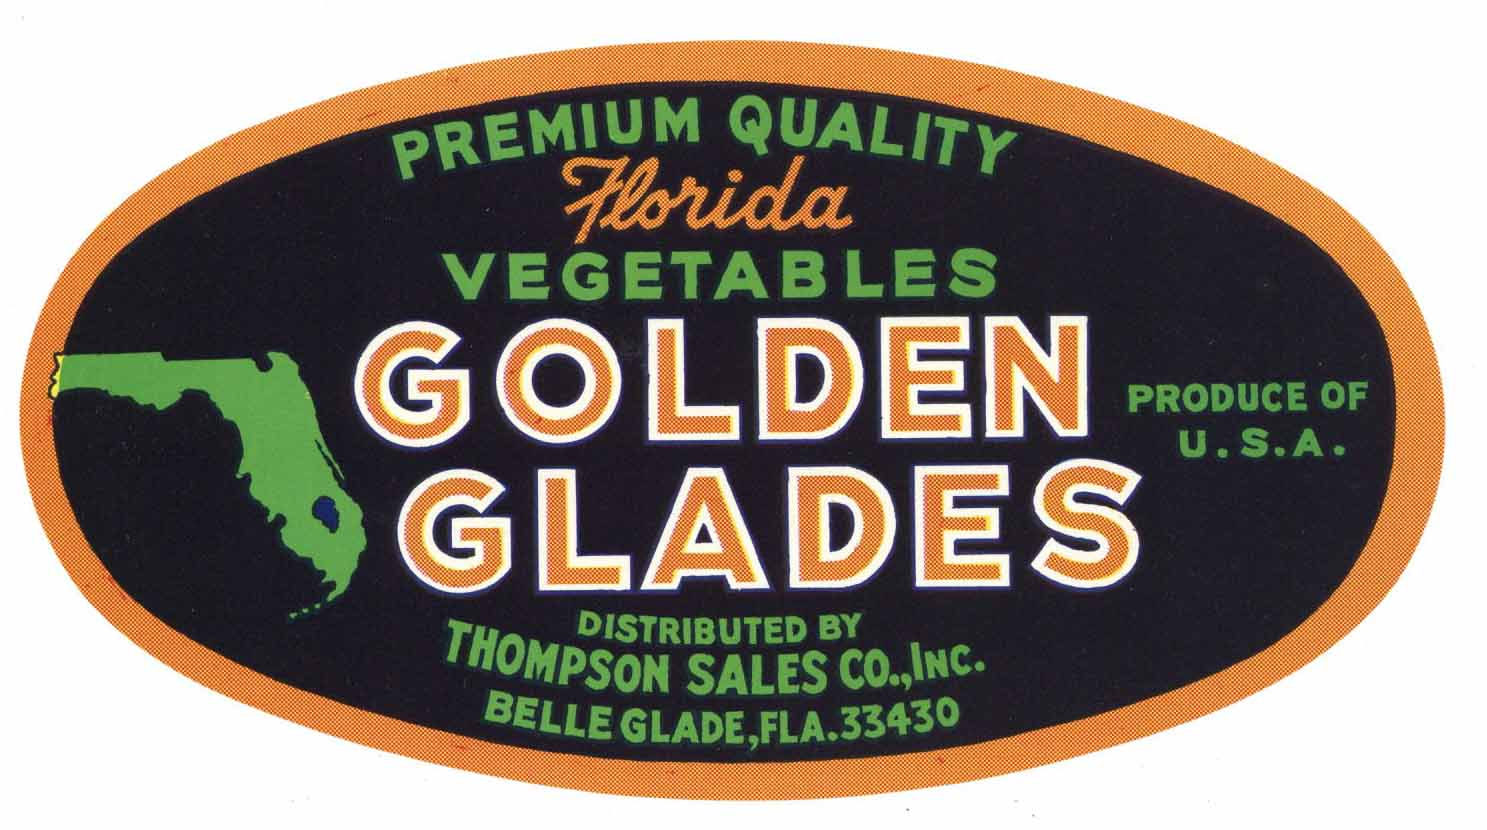 Golden Glades Brand Vintage Belle Glade Florida Vegetable Crate Label